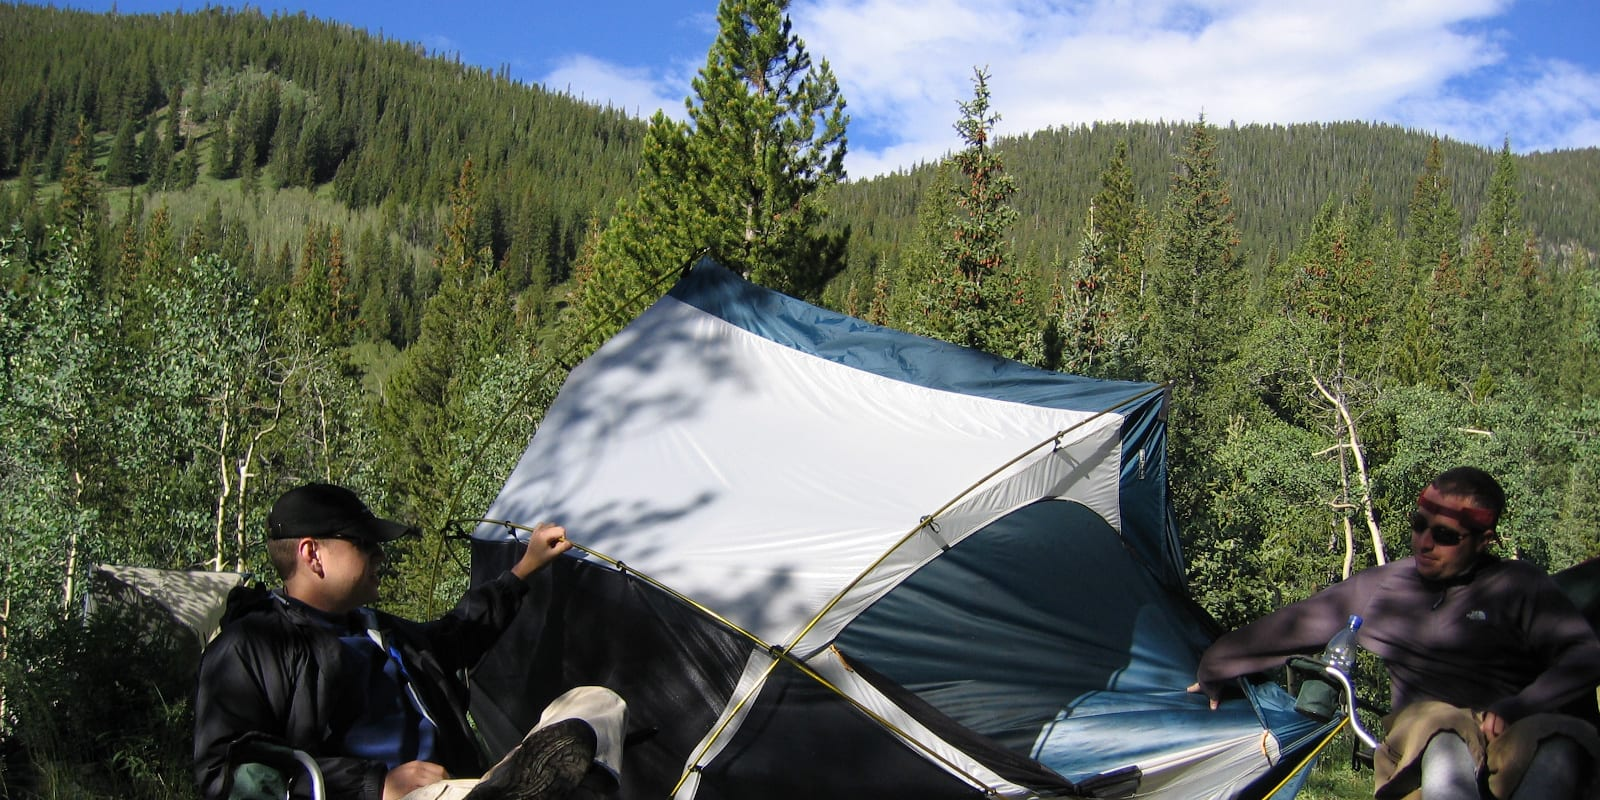 Tent Camping Kenosha Pass Colorado Bailey CO